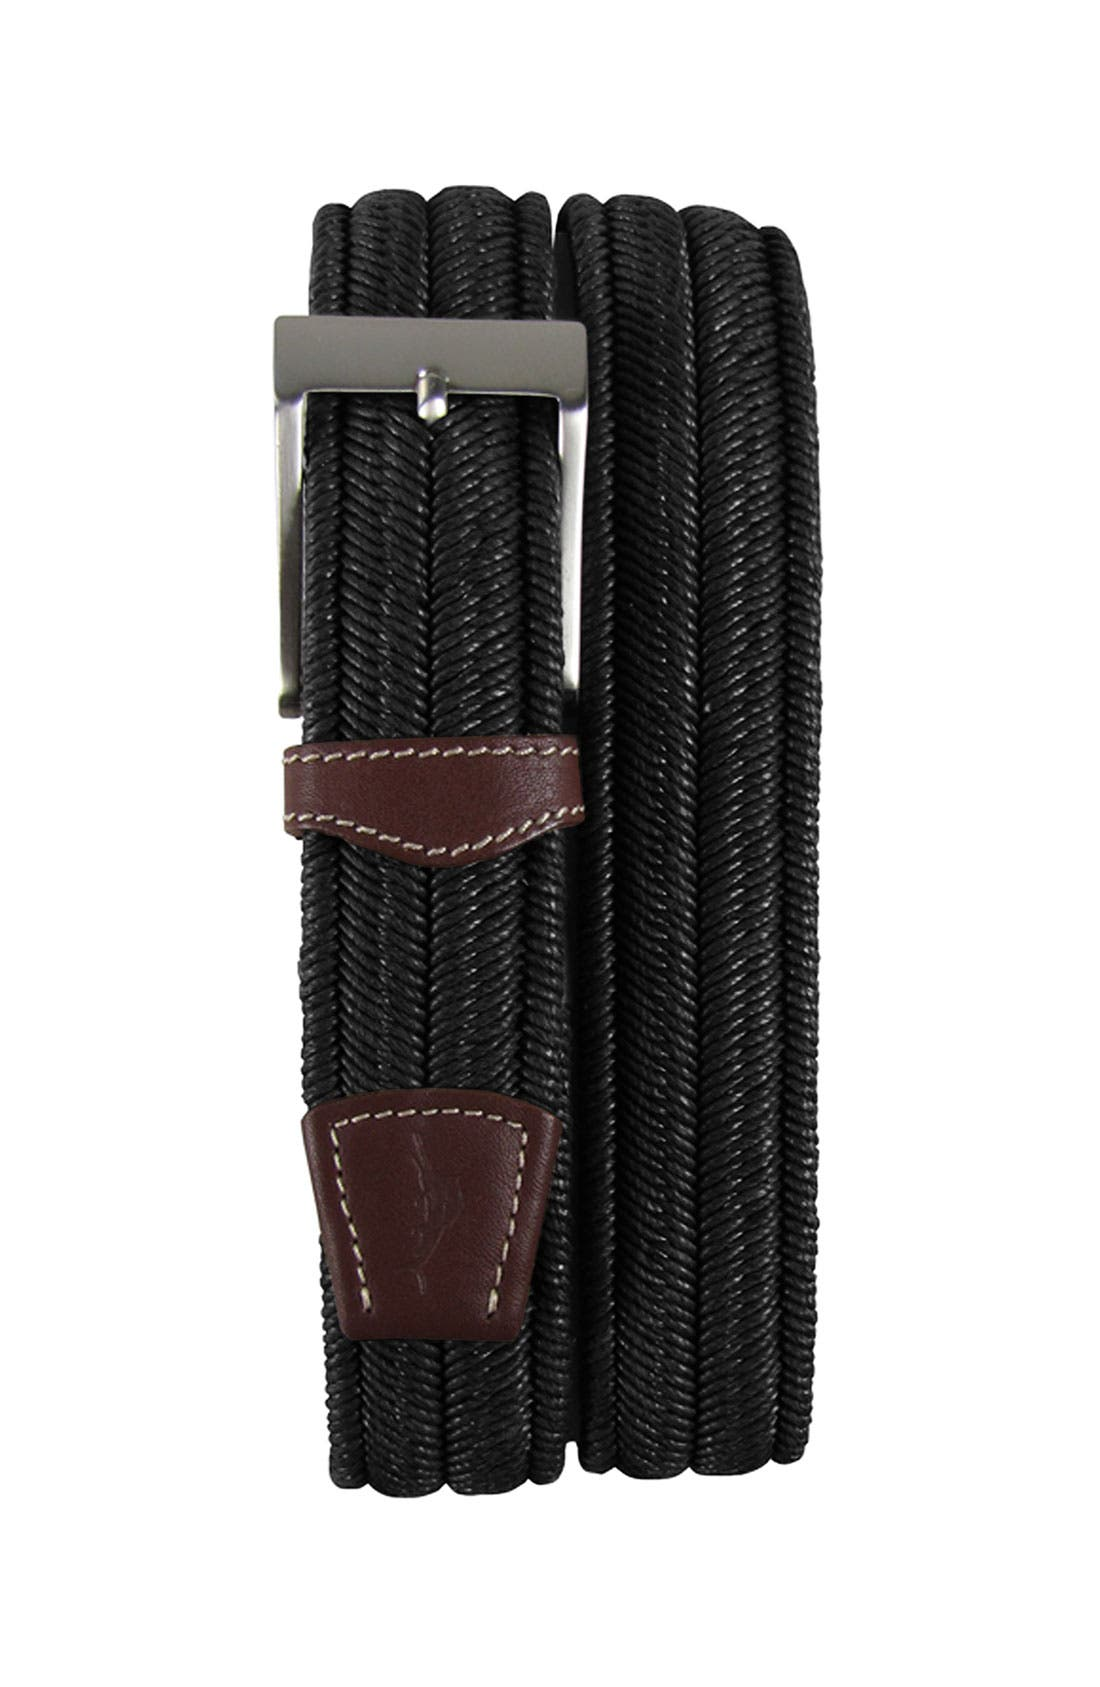 Main Image - Tommy Bahama 'Castaway' Woven Cotton Belt